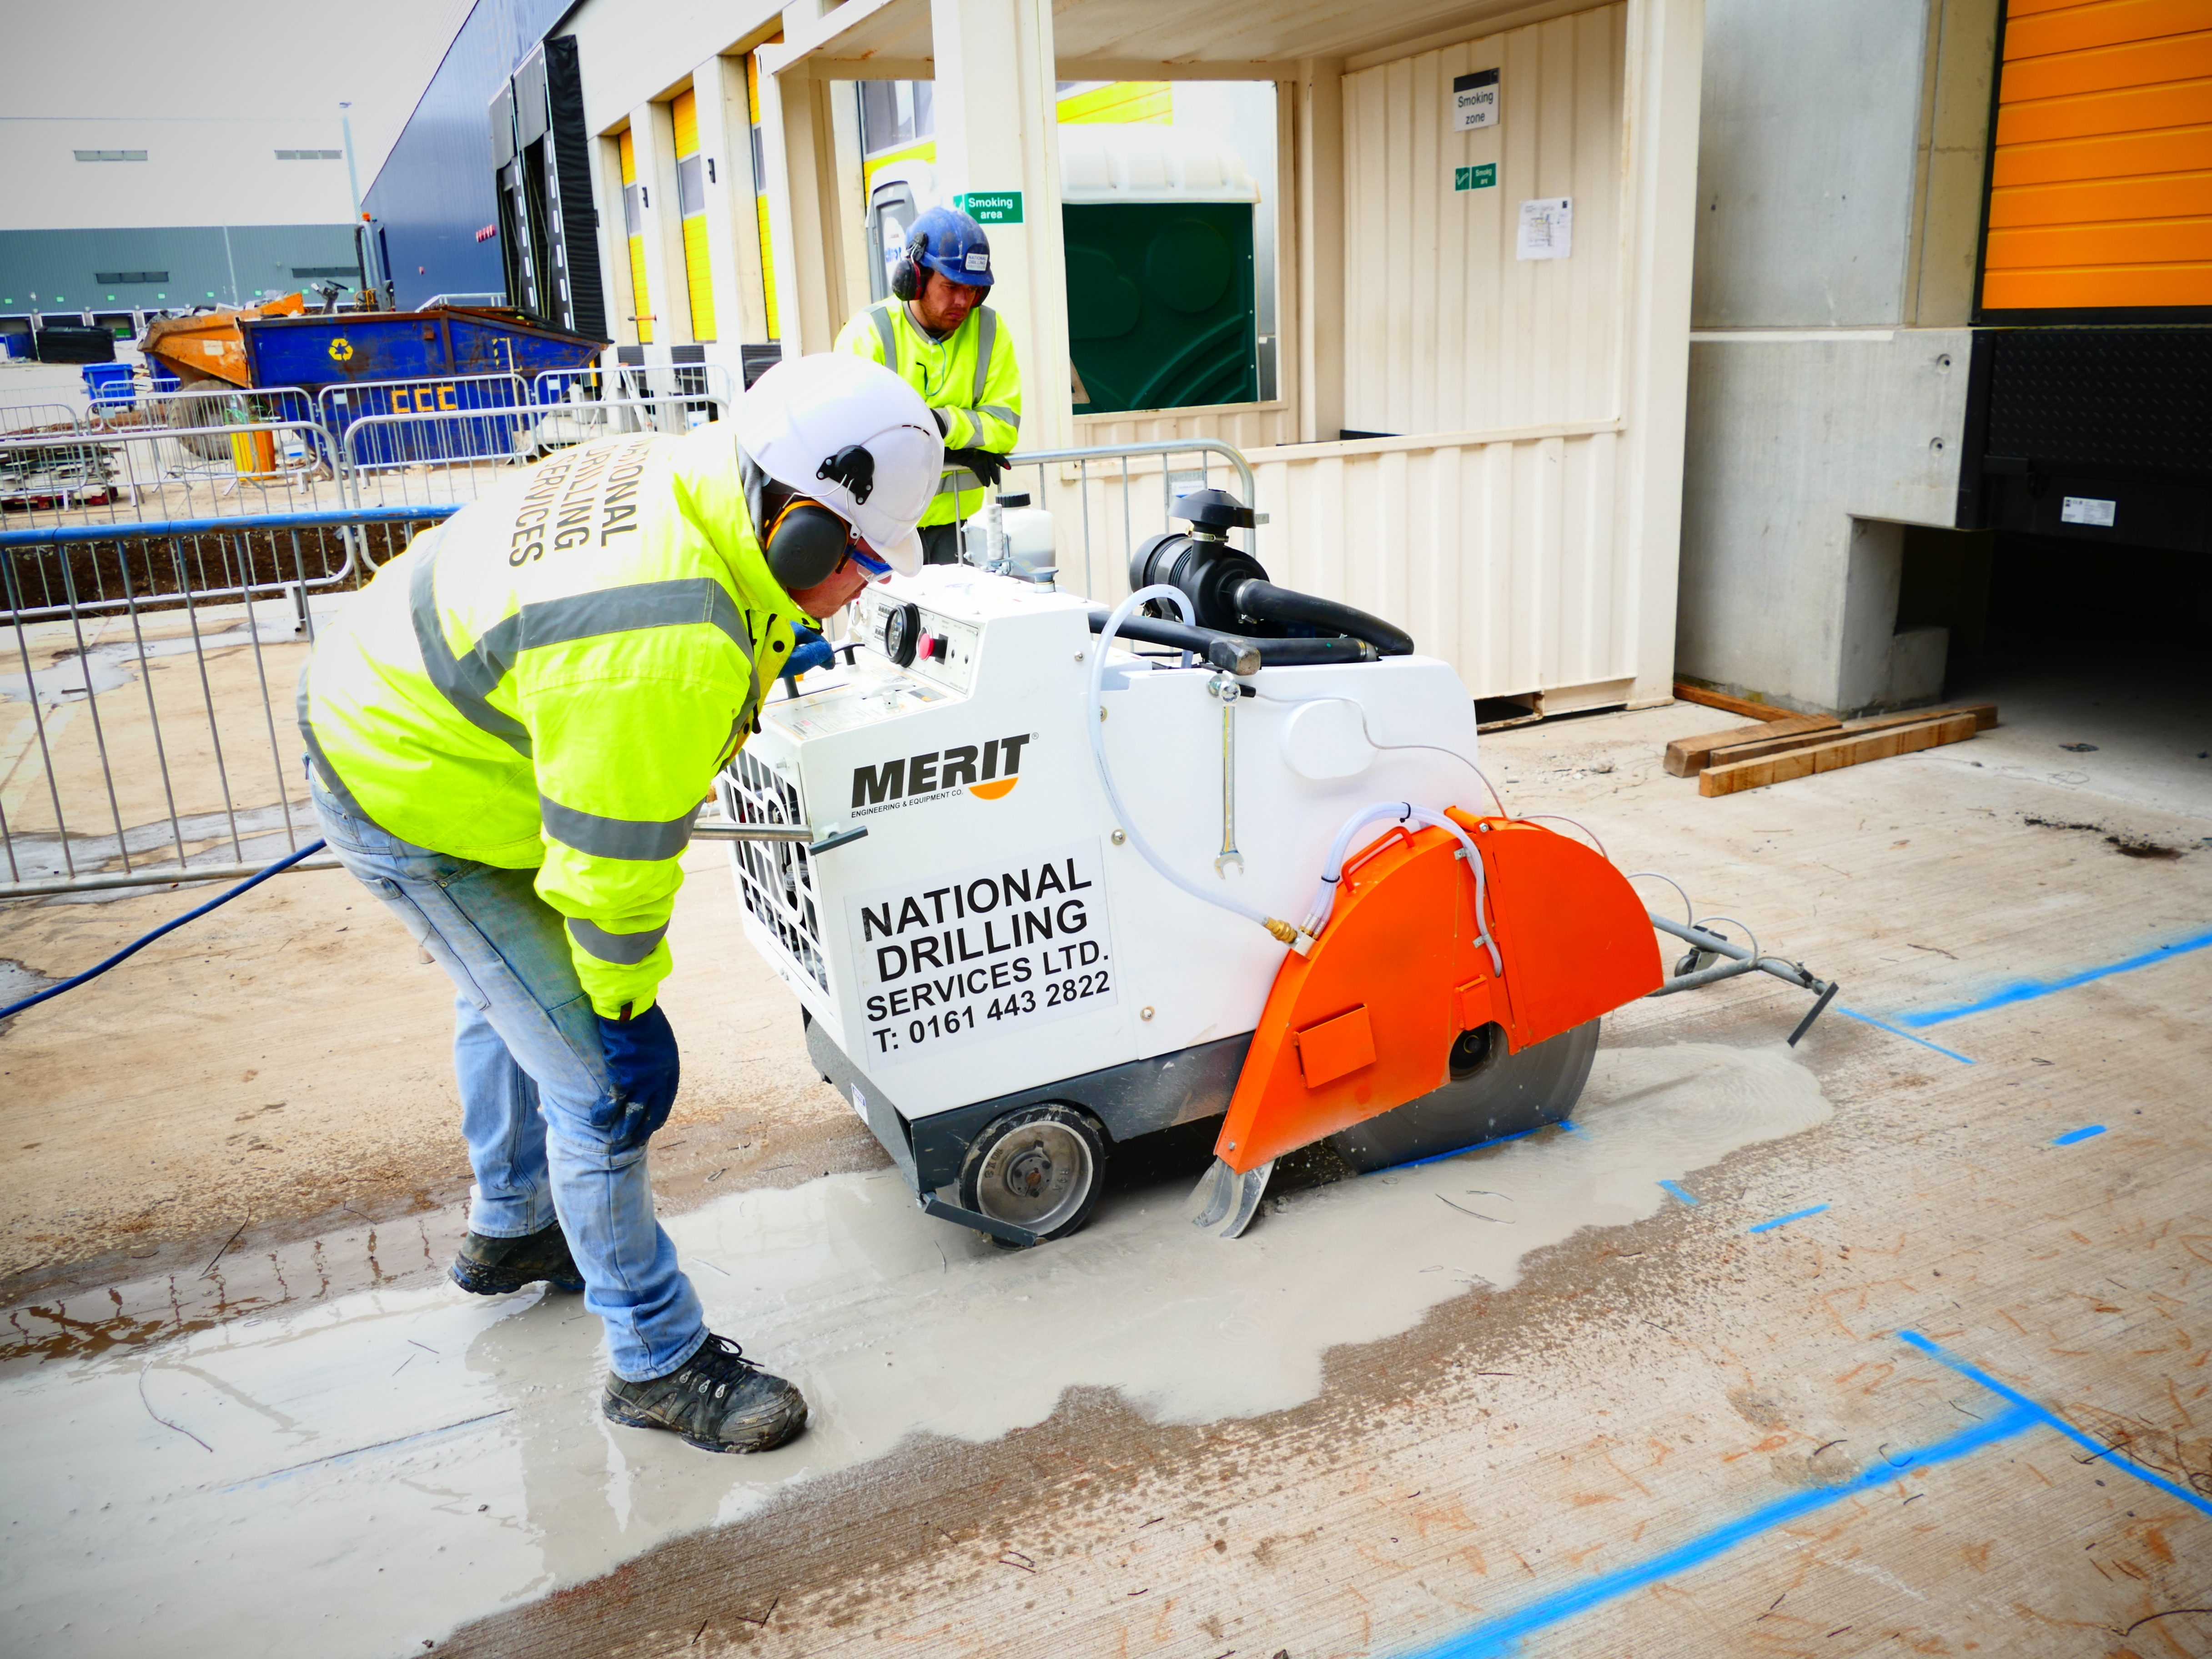 National Drilling Services Blackpool Concrete Drilling